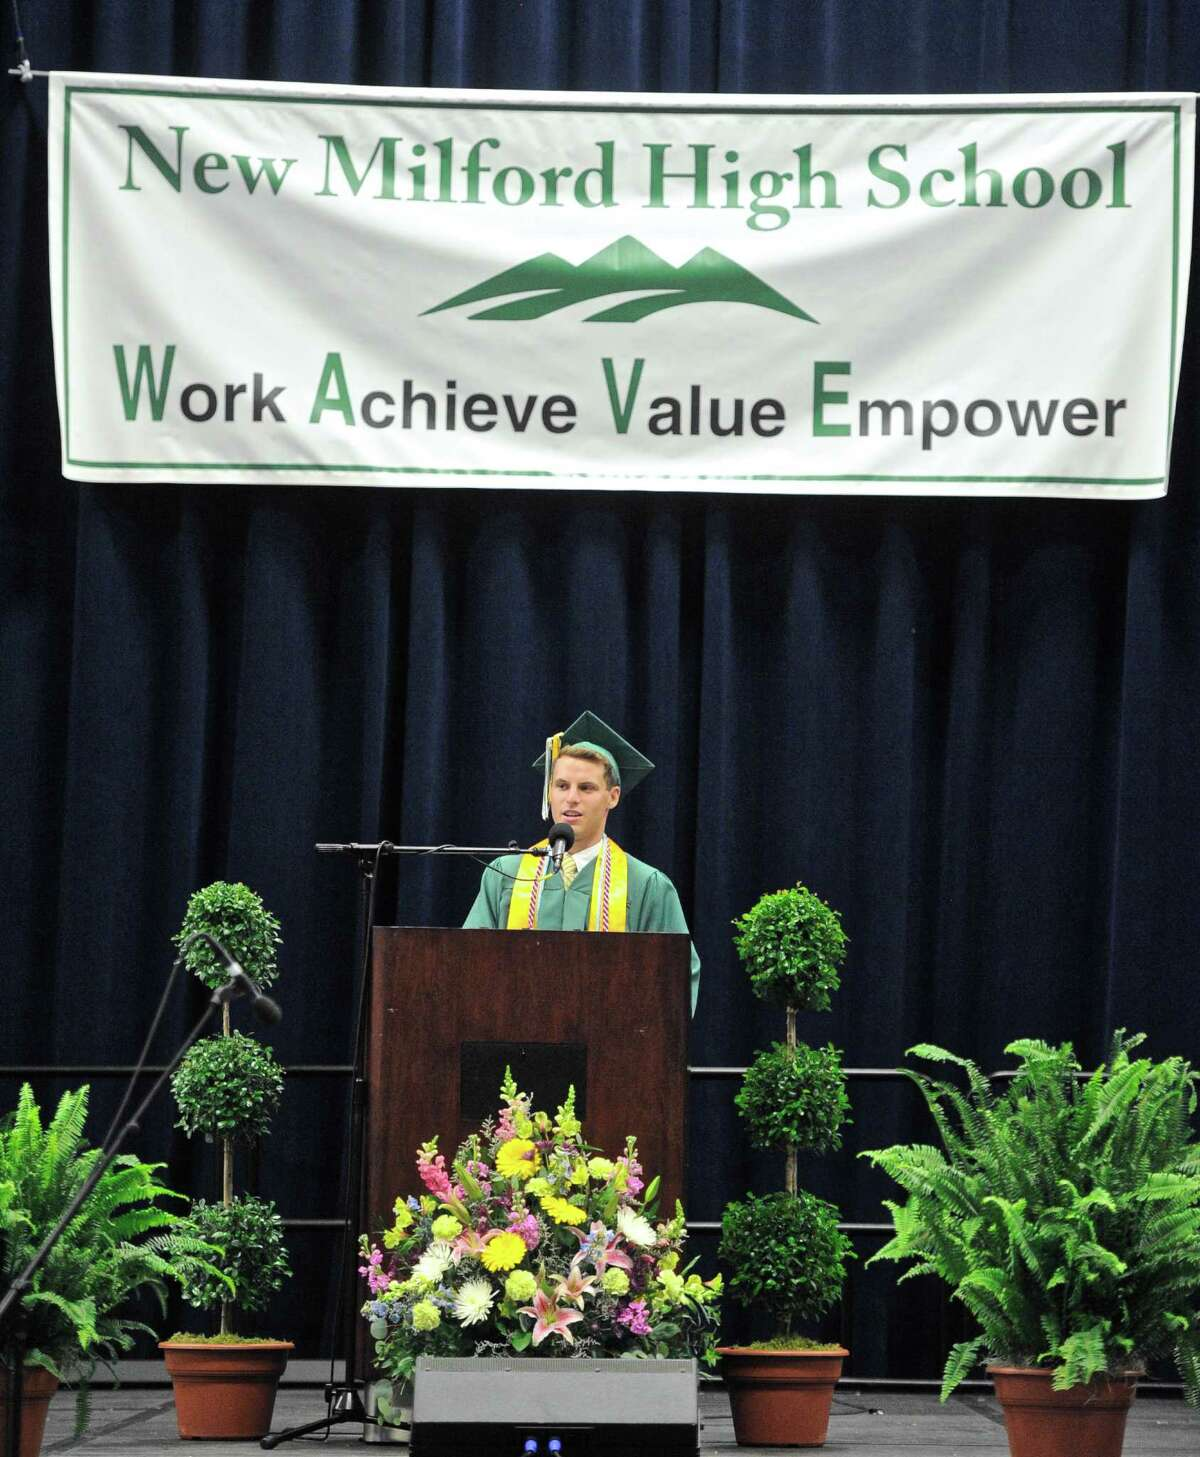 Valedictorian Nathaniel carrel Diamond delivers his address during the New Milford High School 2016 Graduation Exercise, on June 11, 2016, at the O'Neill Center, Western Connecticut State University, Danbury, Conn.